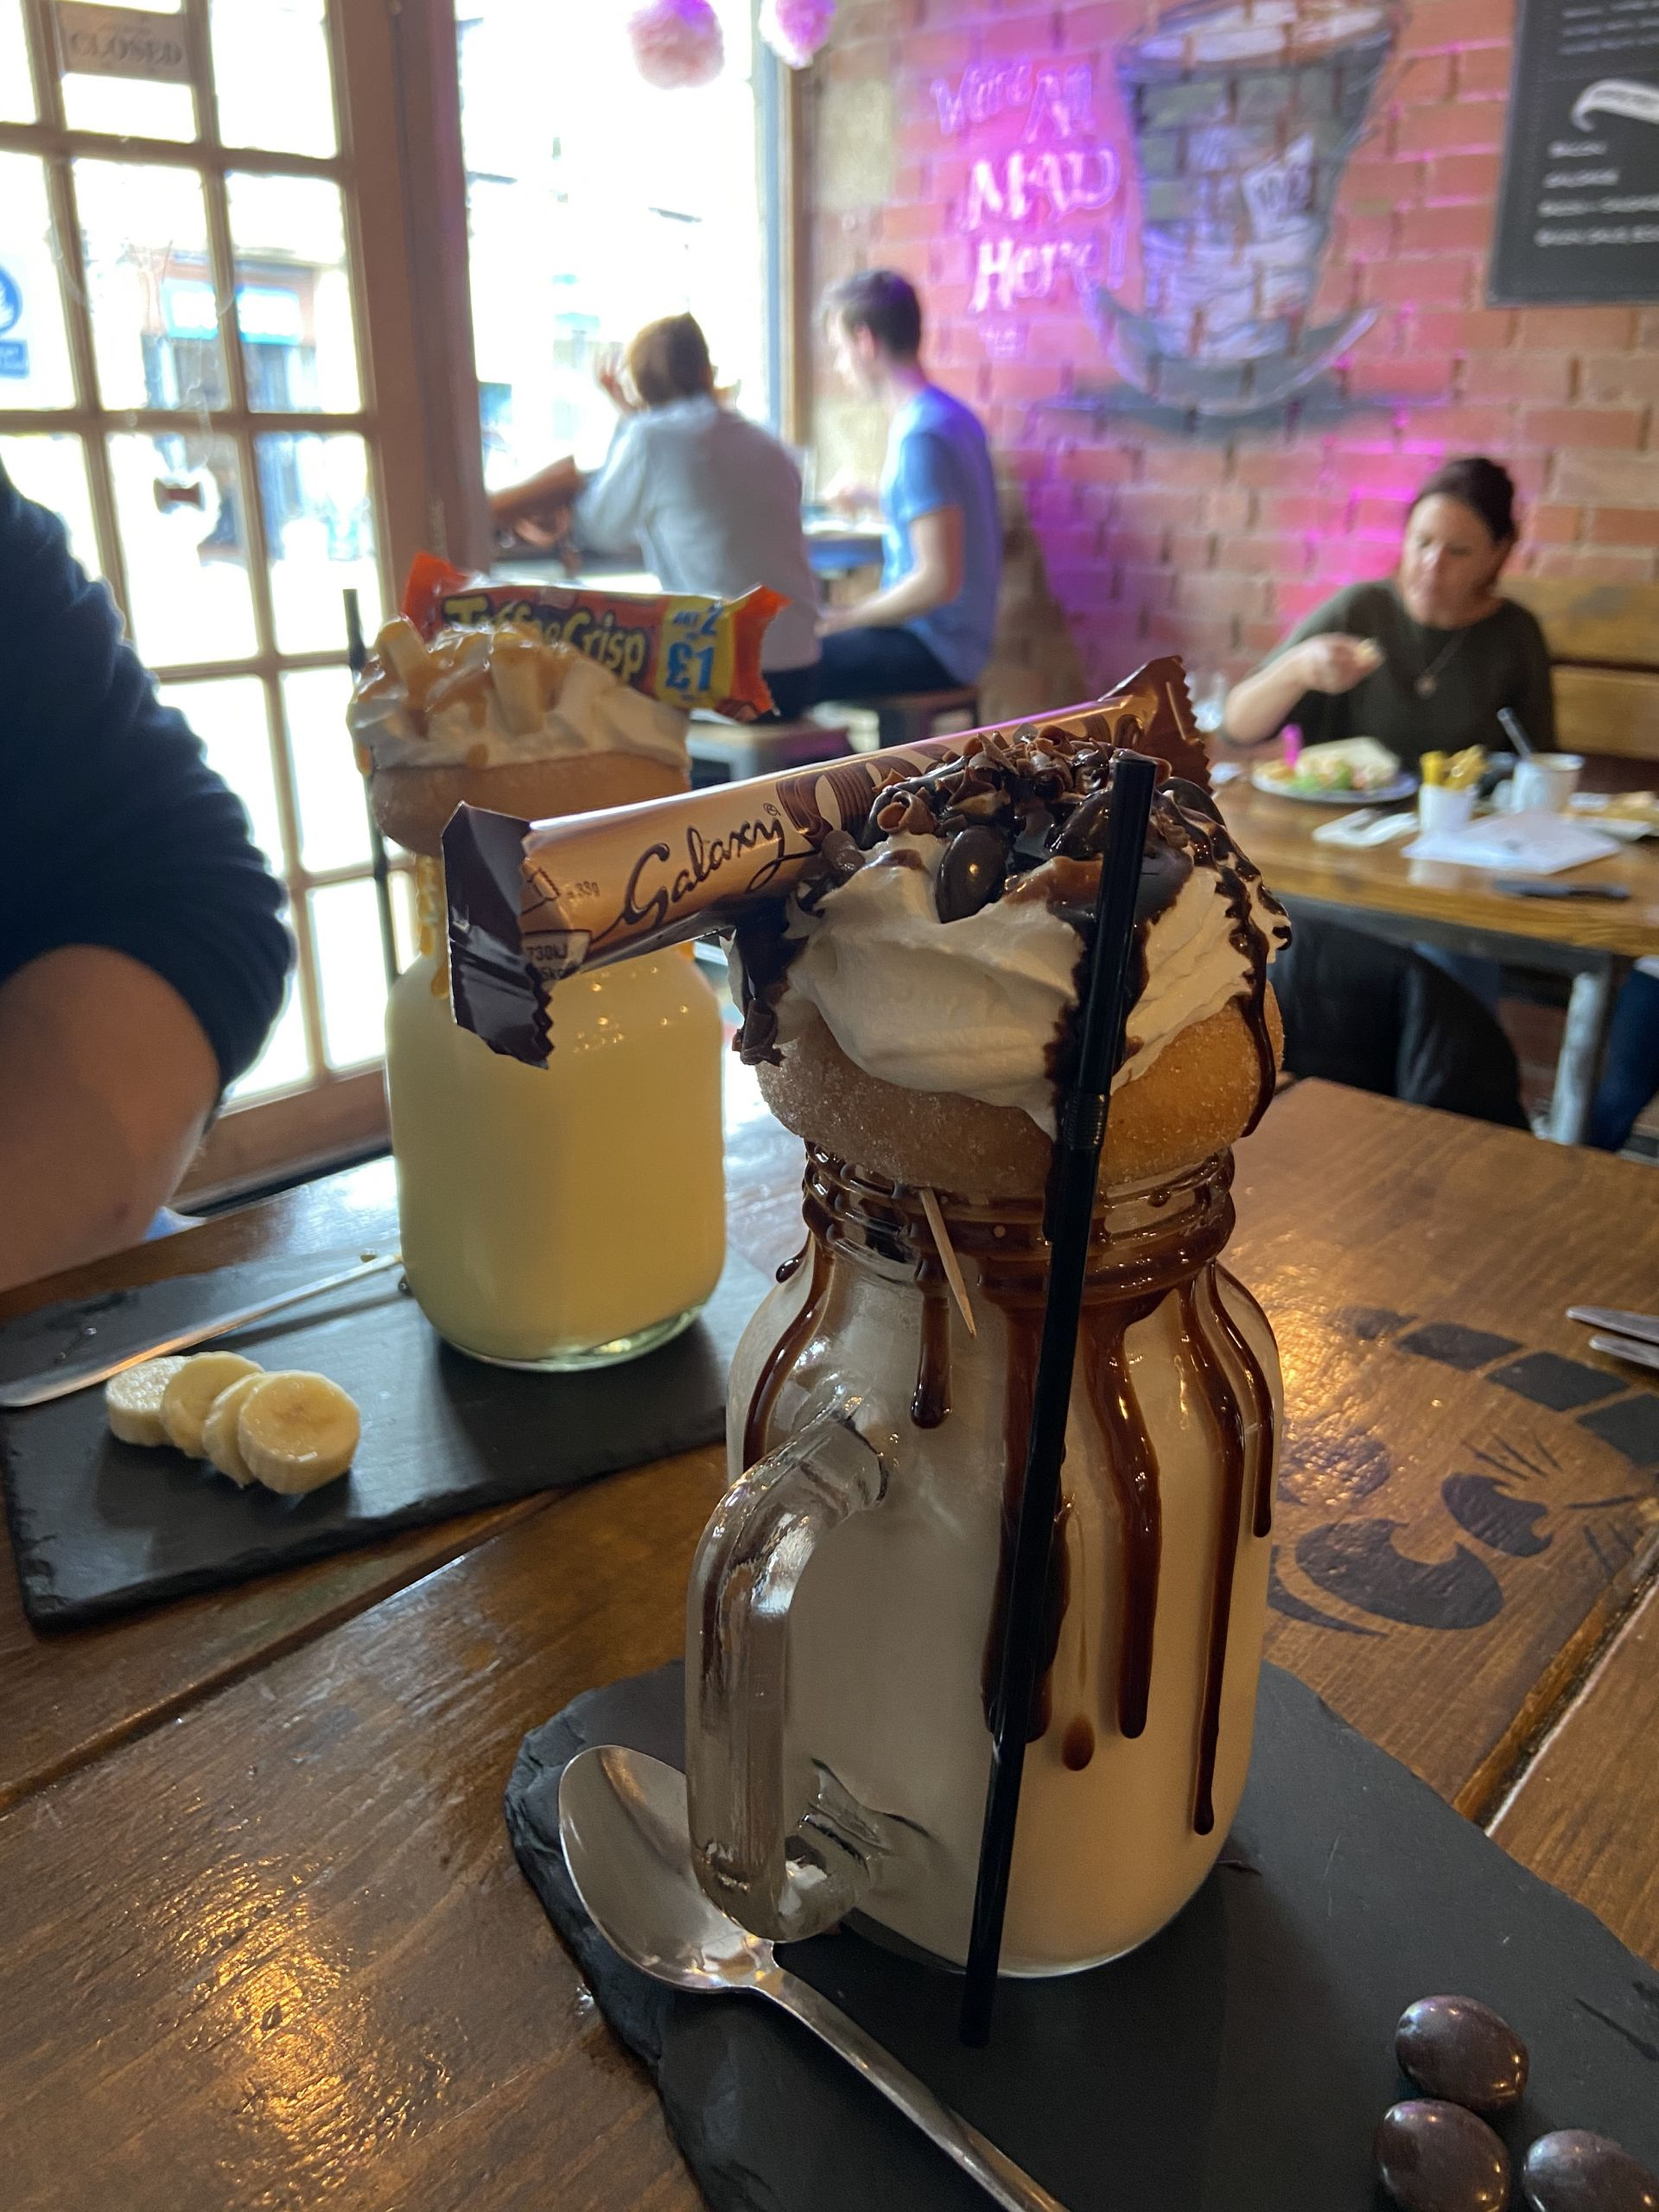 freakshakes at the Mad Hatter's cafe in Matlock